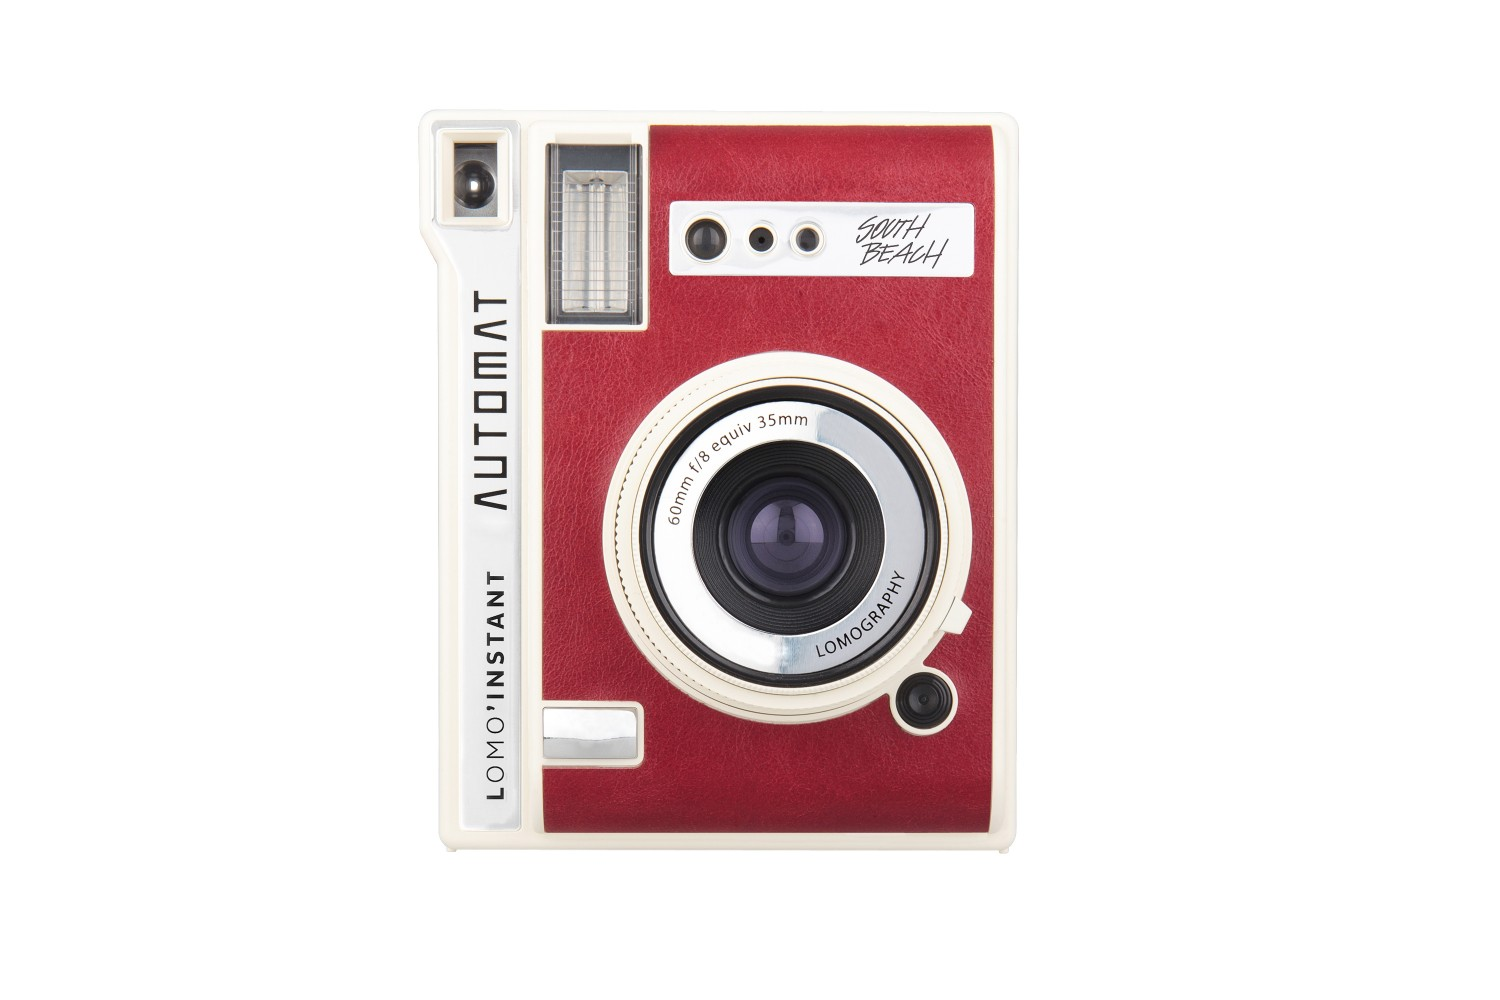 Lomo'Instant Automat & Lenzen - South Beach